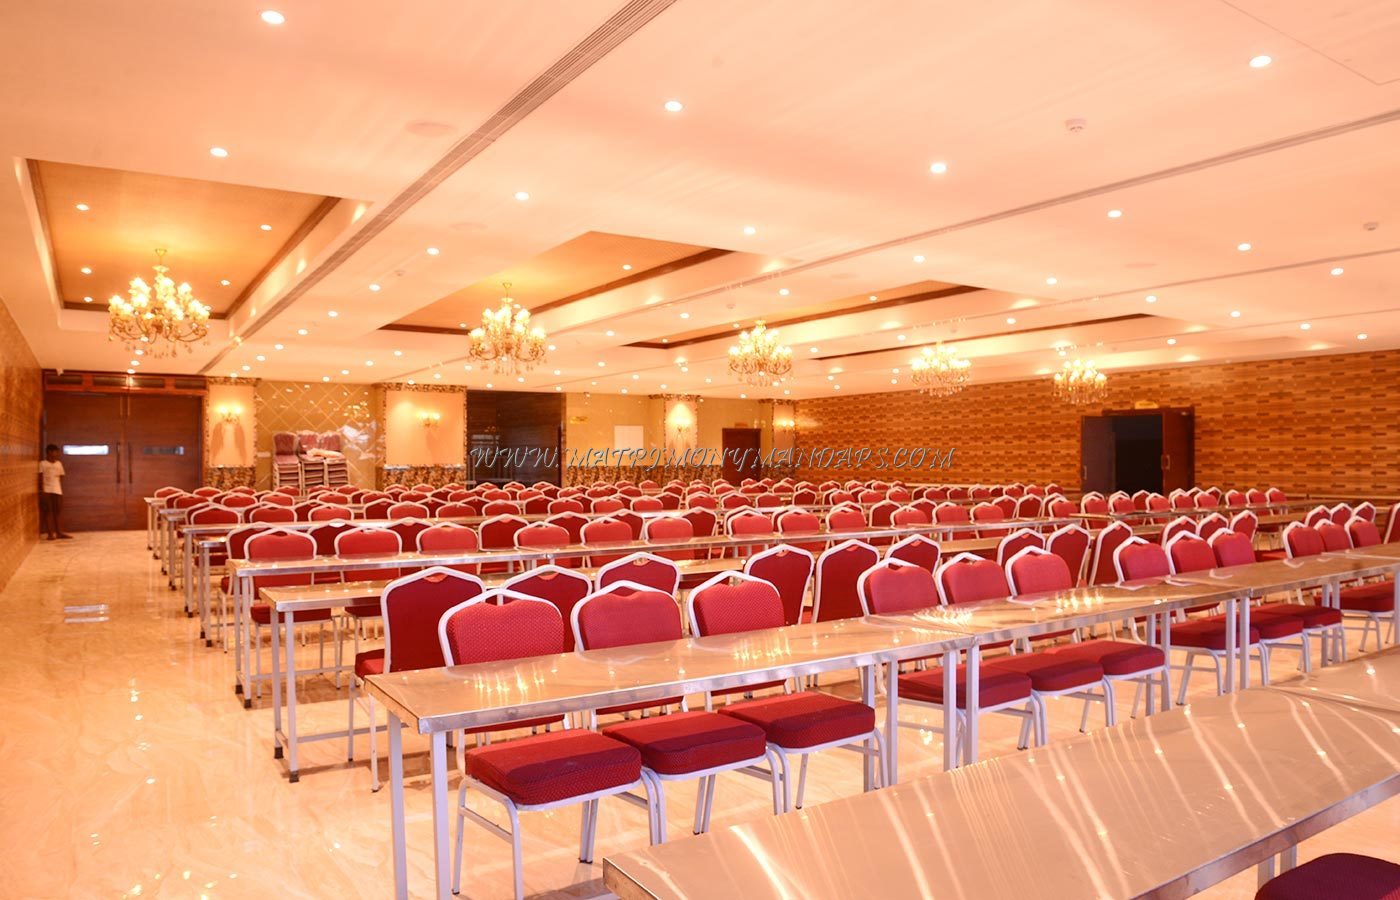 Find the availability of the PSB Conventions (A/C) in Ambattur, Chennai and avail special offers